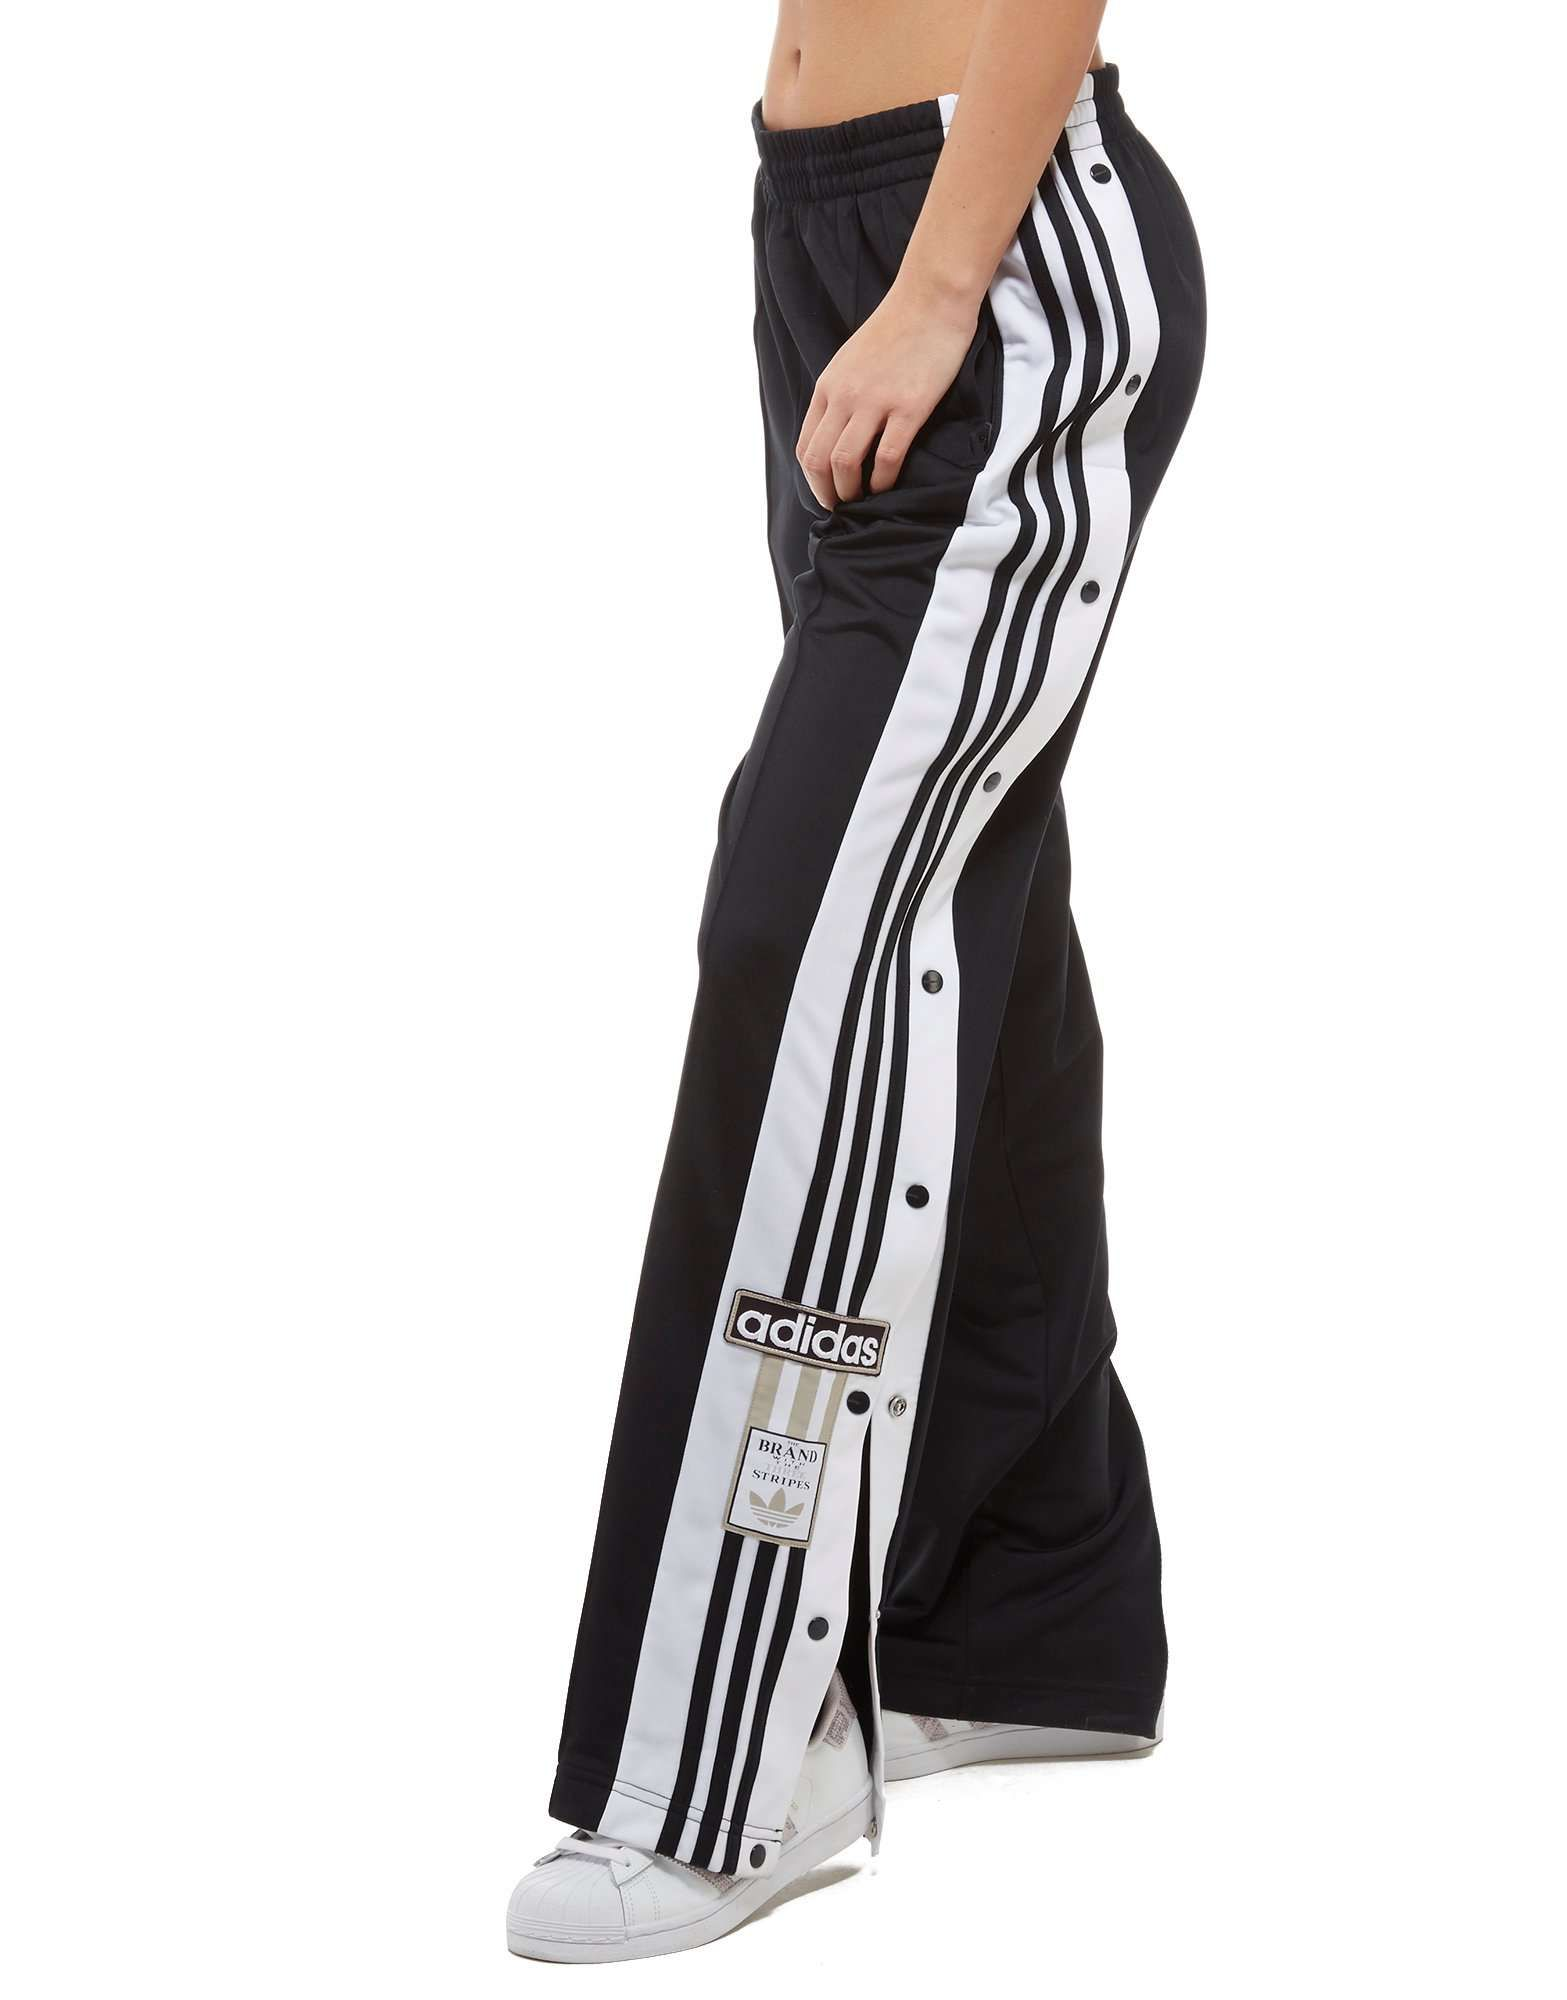 1528a2ab42b adidas Originals Adibreak Popper Pants - Shop online for adidas Originals  Adibreak Popper Pants with JD